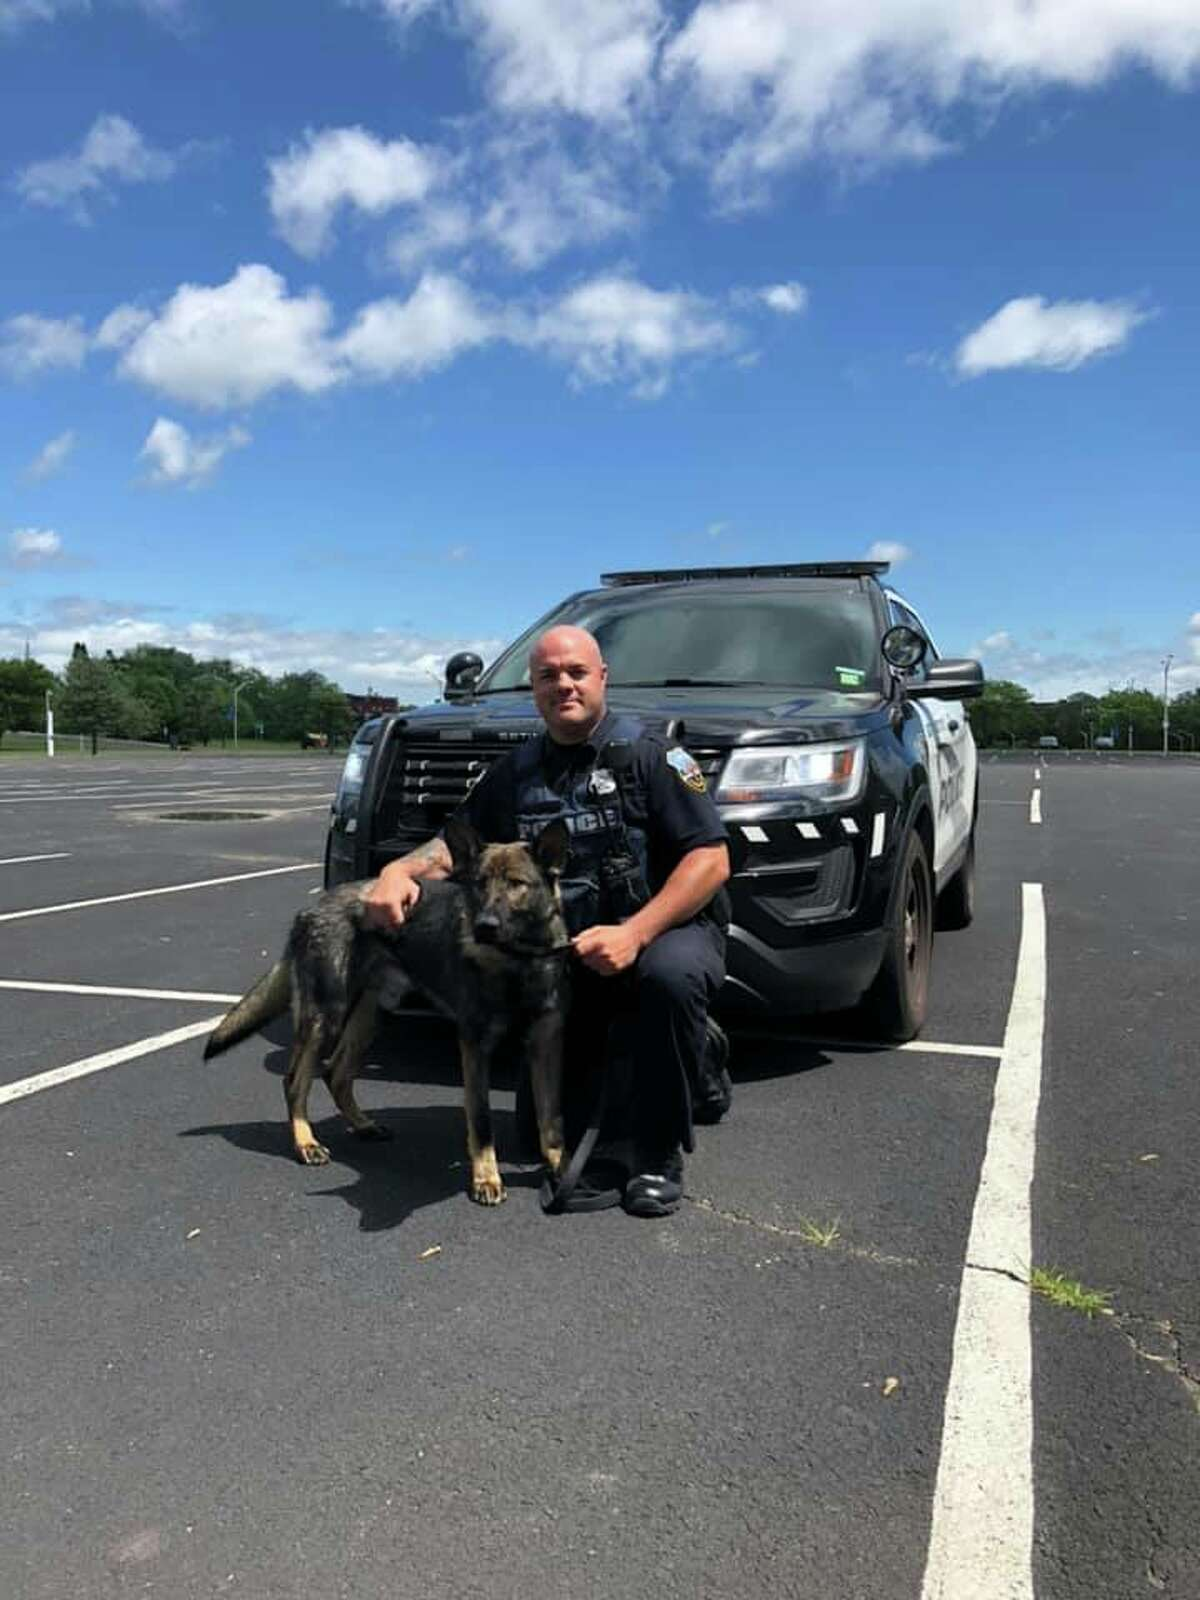 The Schenectady Police Department welcomed Mynderse to its canine program. He is shown with his handler, identified as Officer Smith, on Tuesday, June 11, 2019.